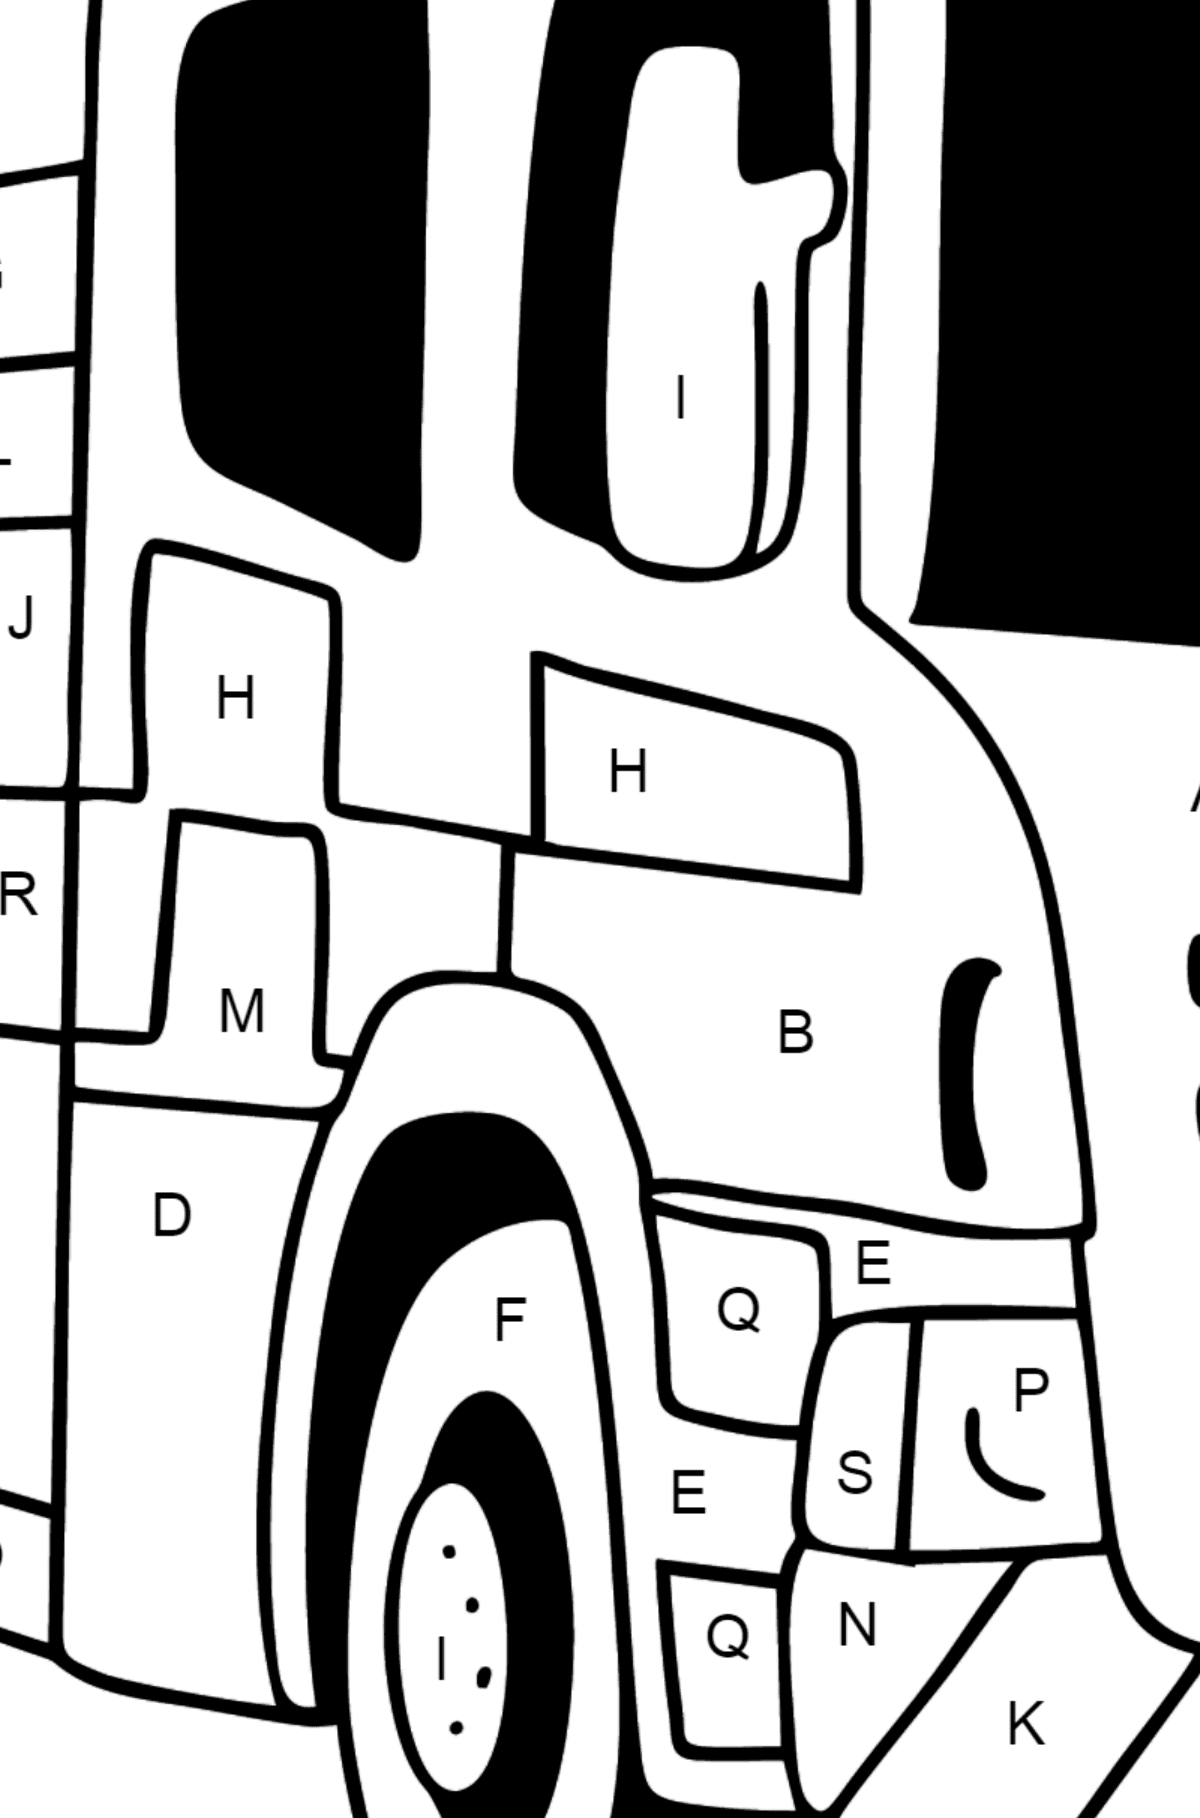 Fire Truck in Great Britain coloring page - Coloring by Letters for Kids